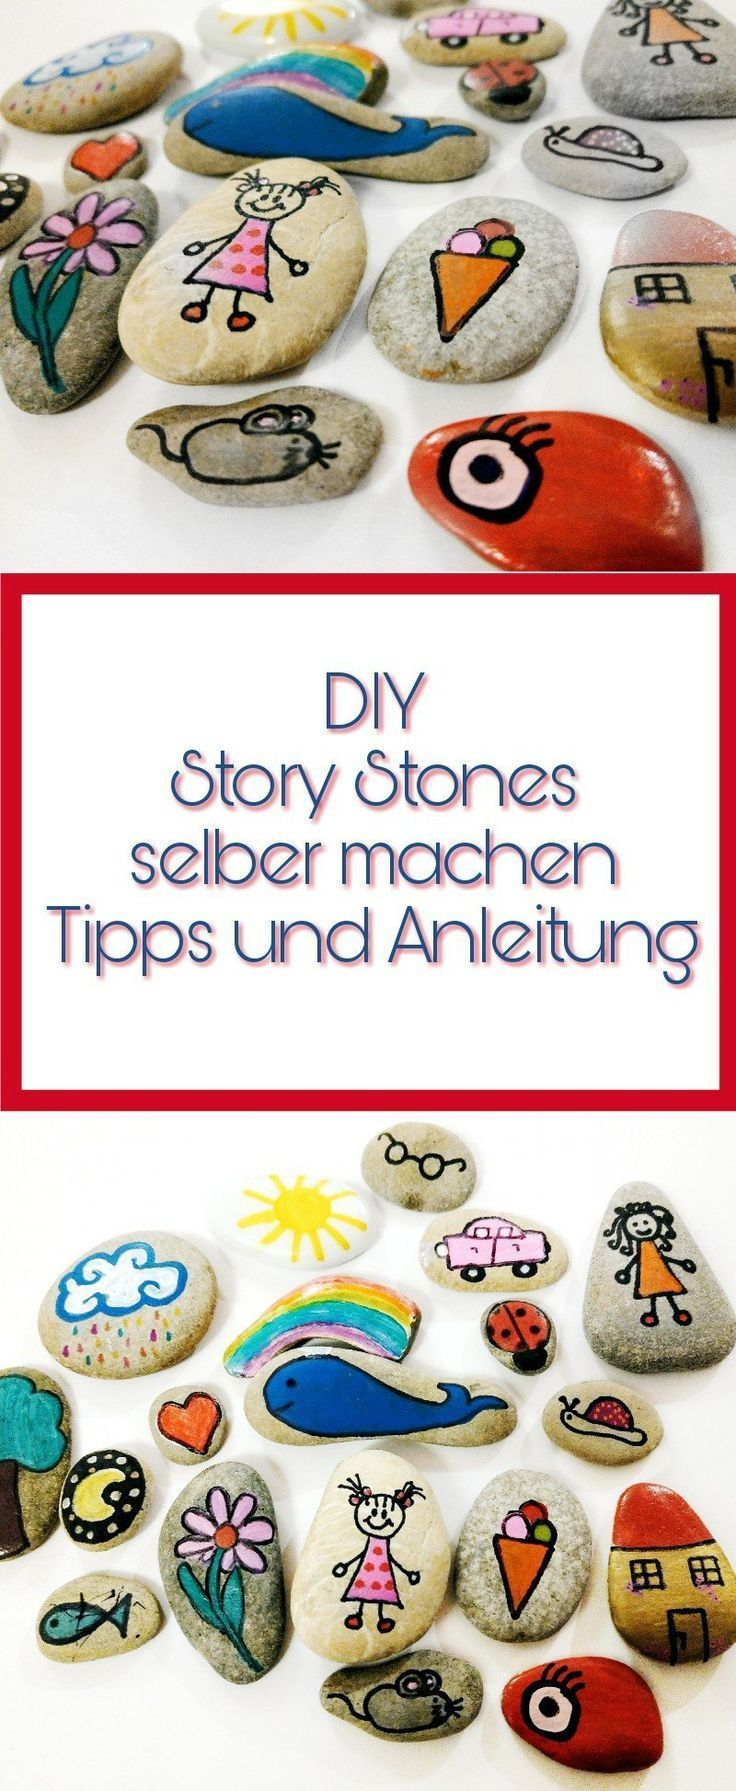 Story Stones – Make story stones yourself with instructions and pictures